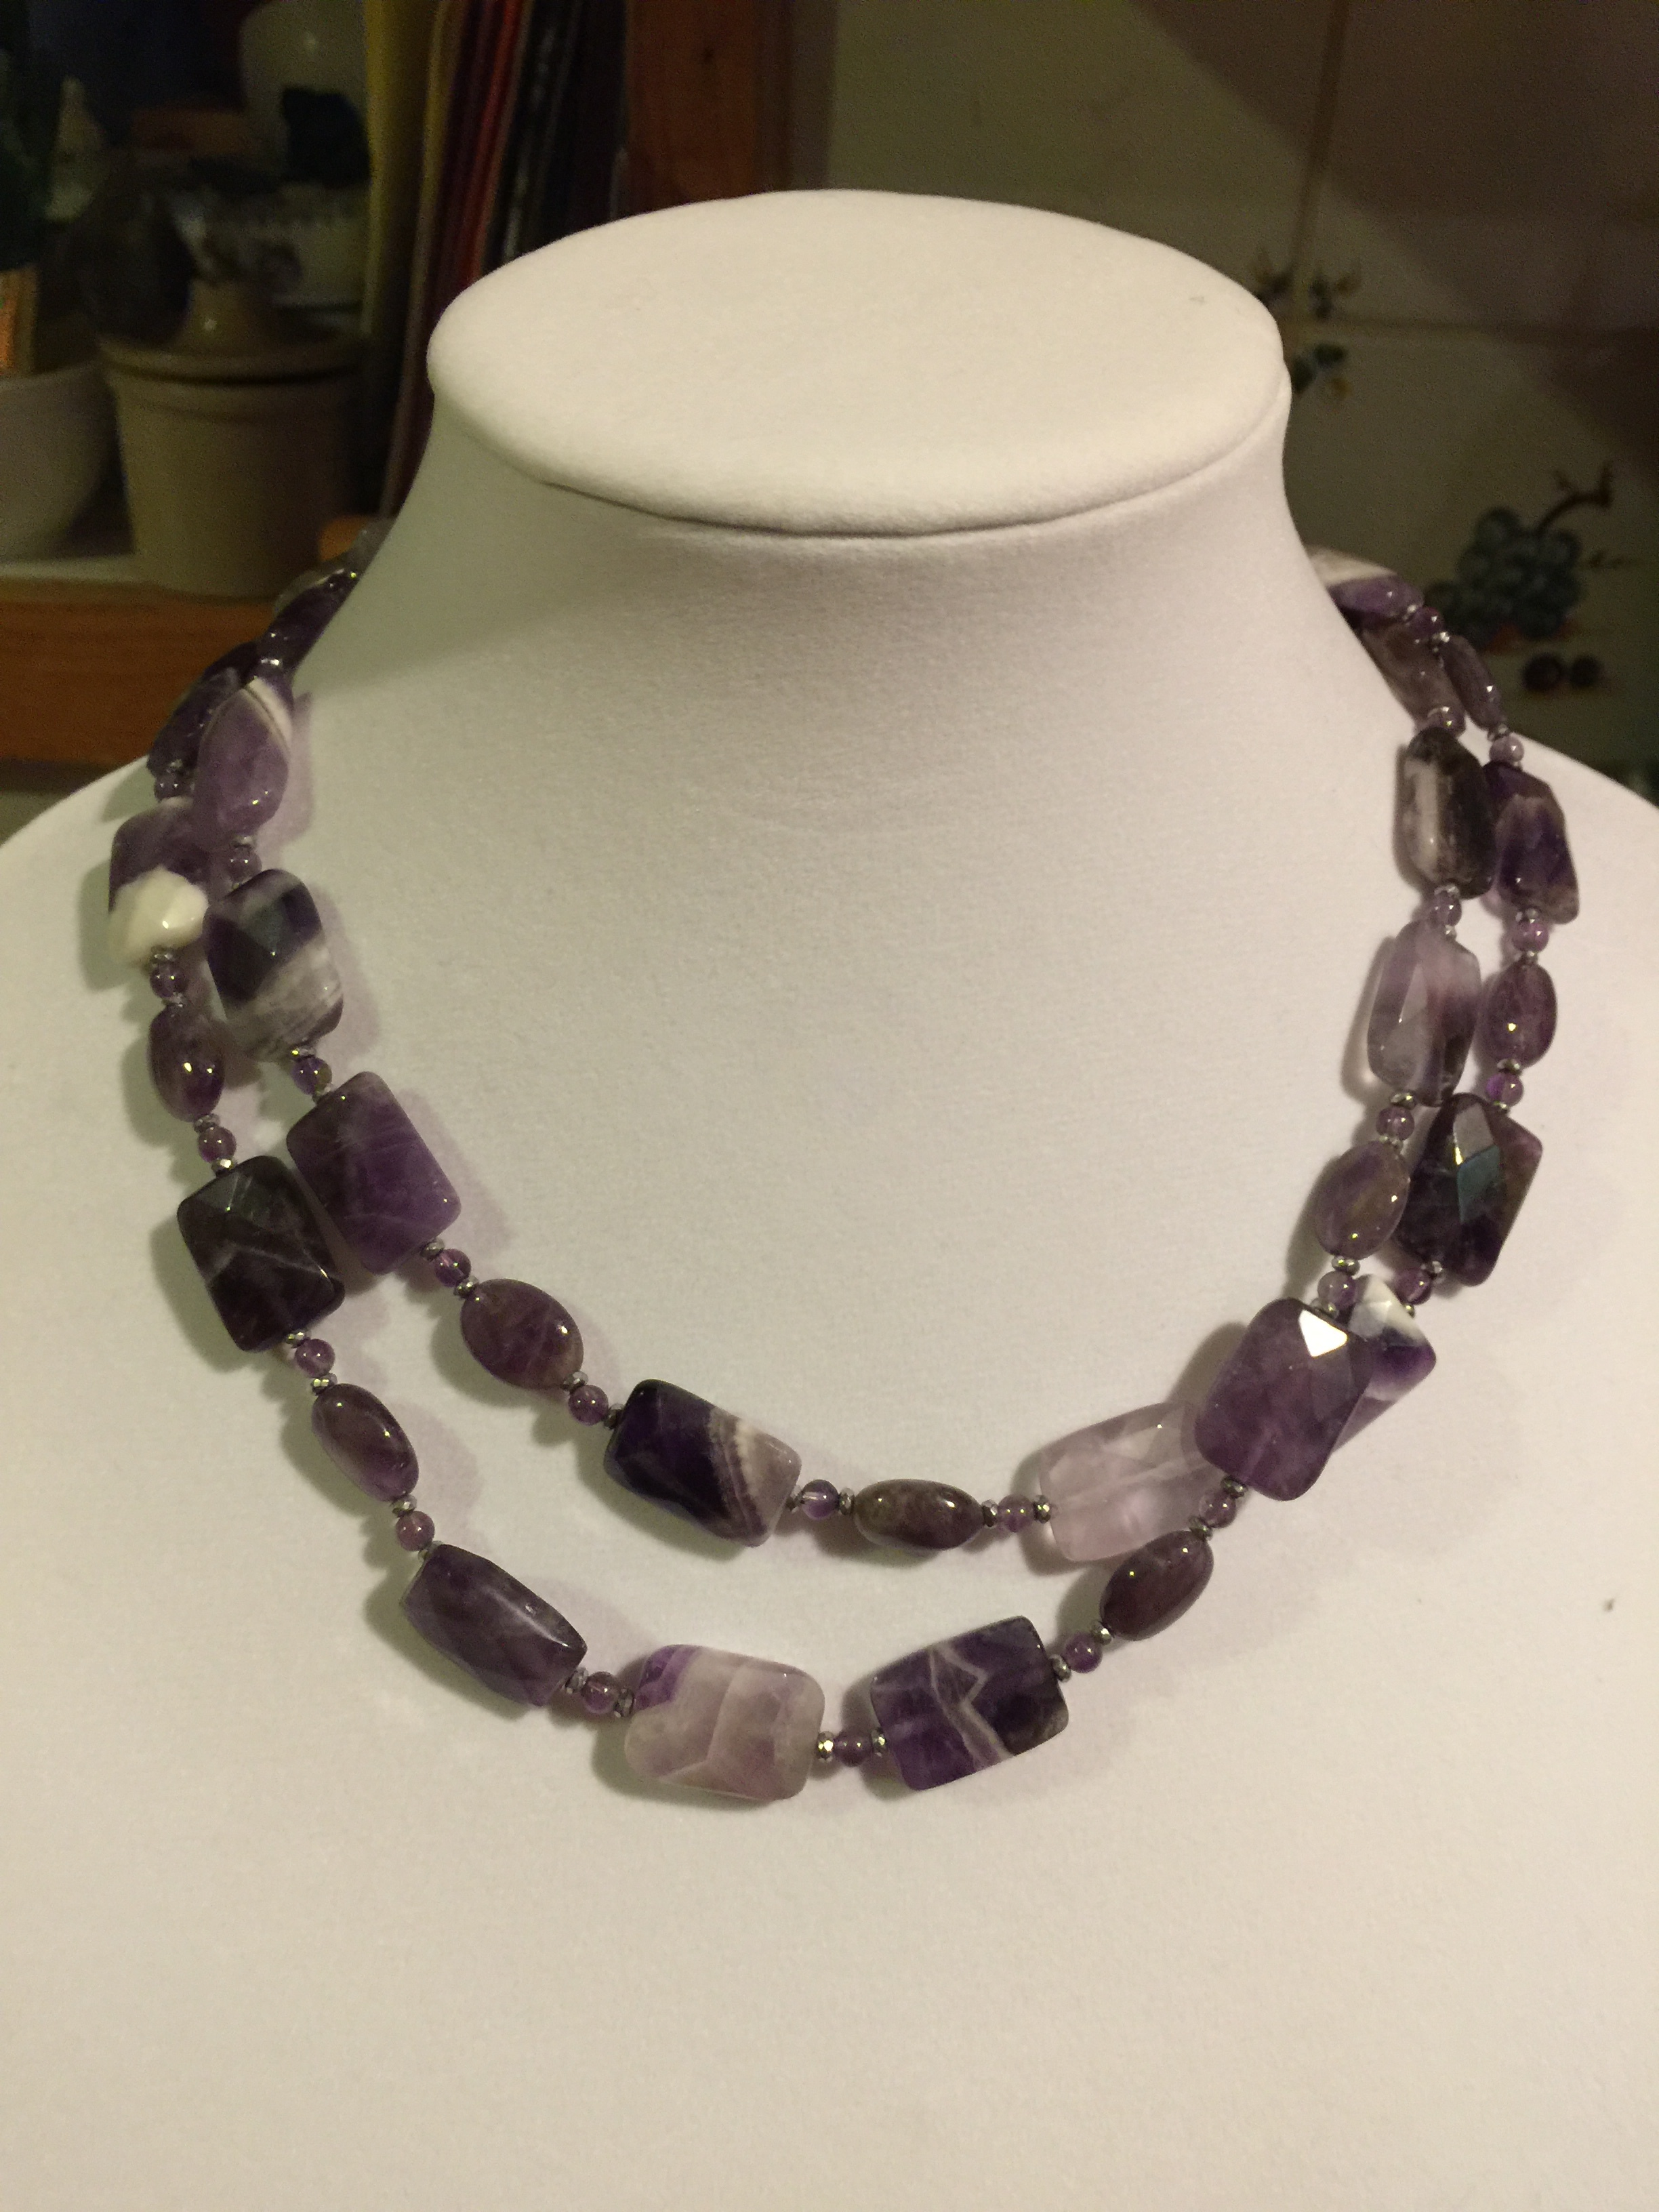 amethyst NECKLACE  Long amethyst necklace with handmade sterling silver clasp.